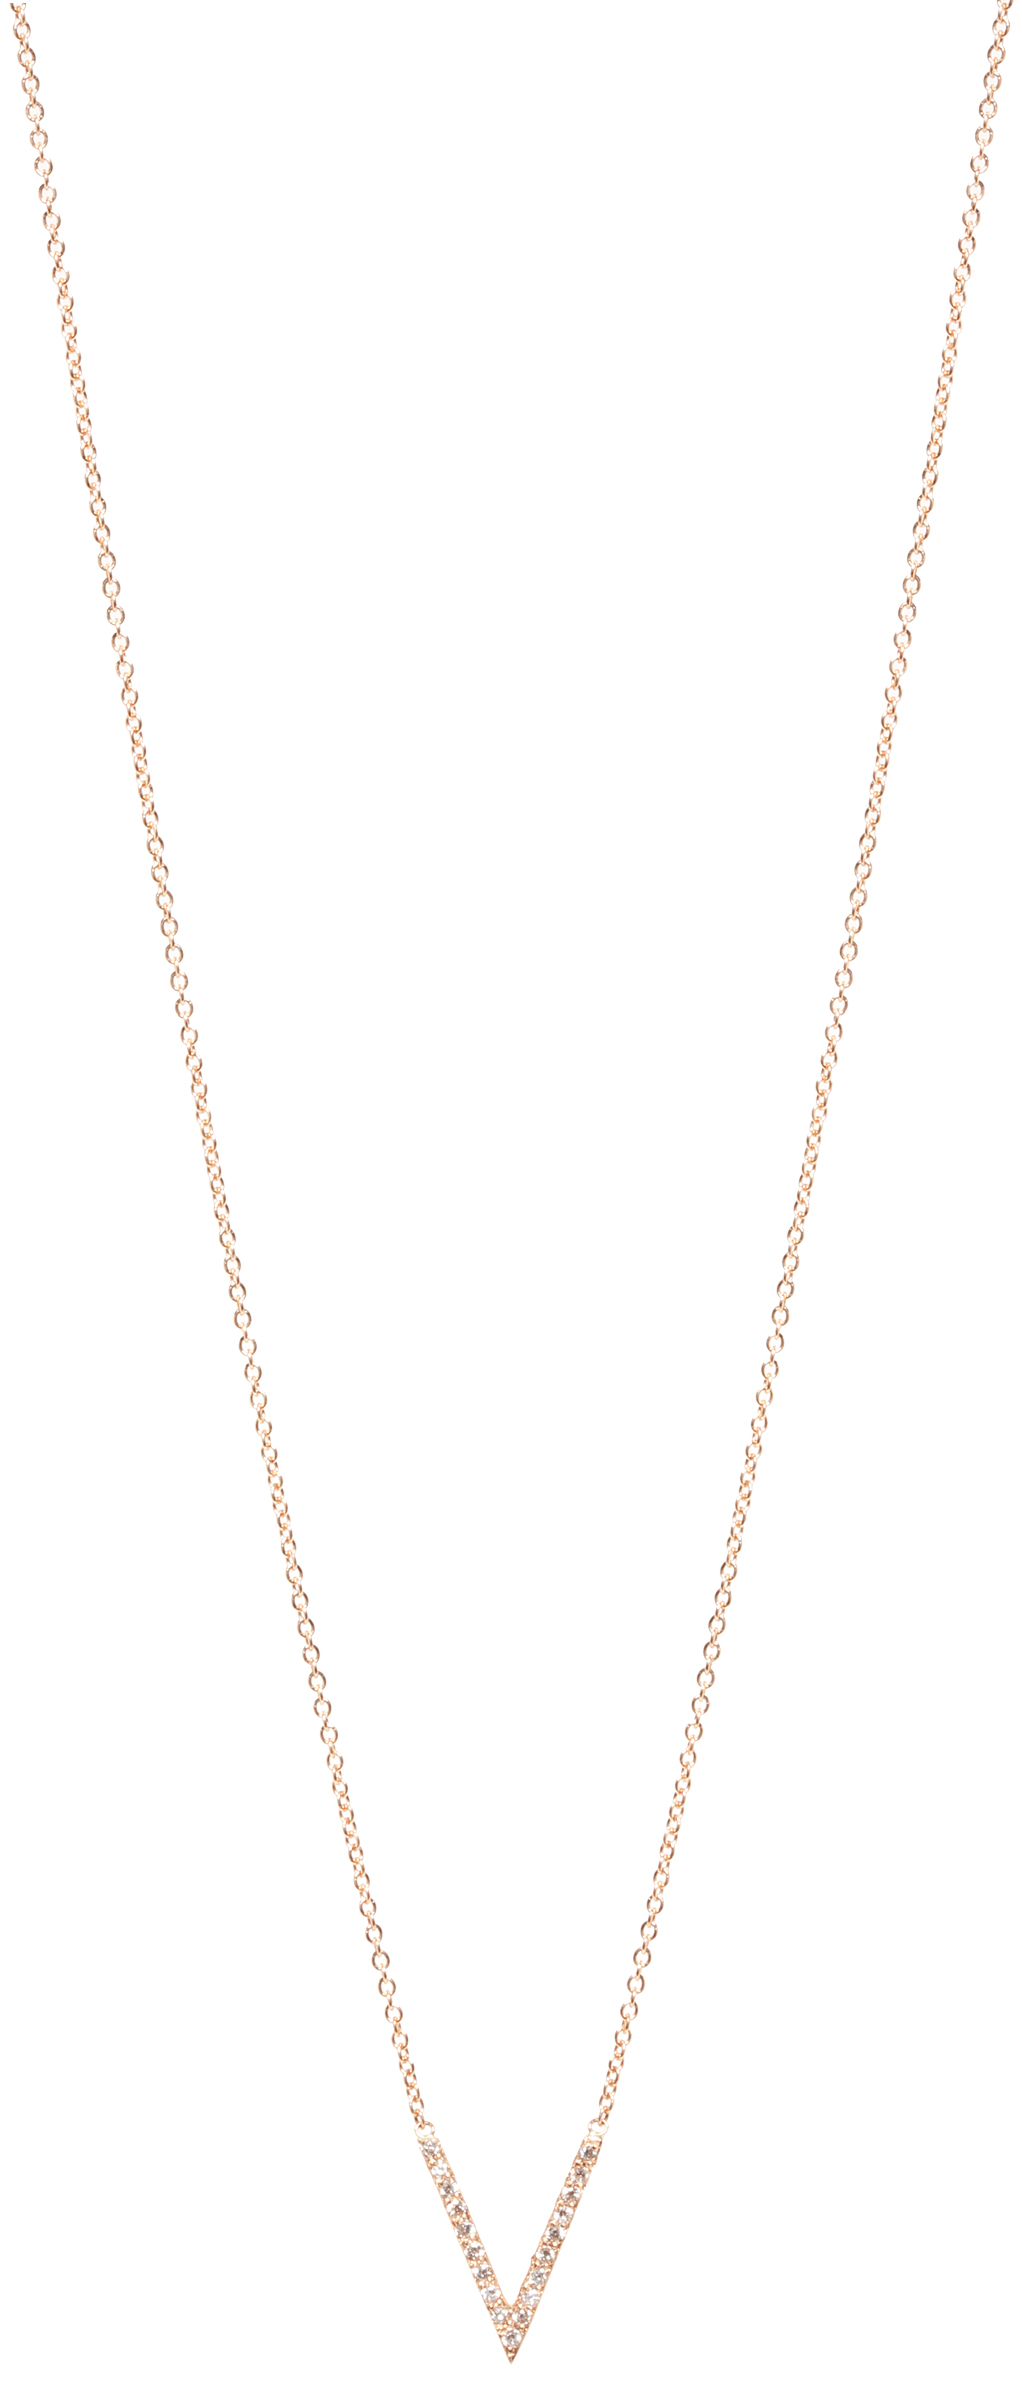 The Jewel - Zoe Chicco - Lookbook - Gold V Necklace